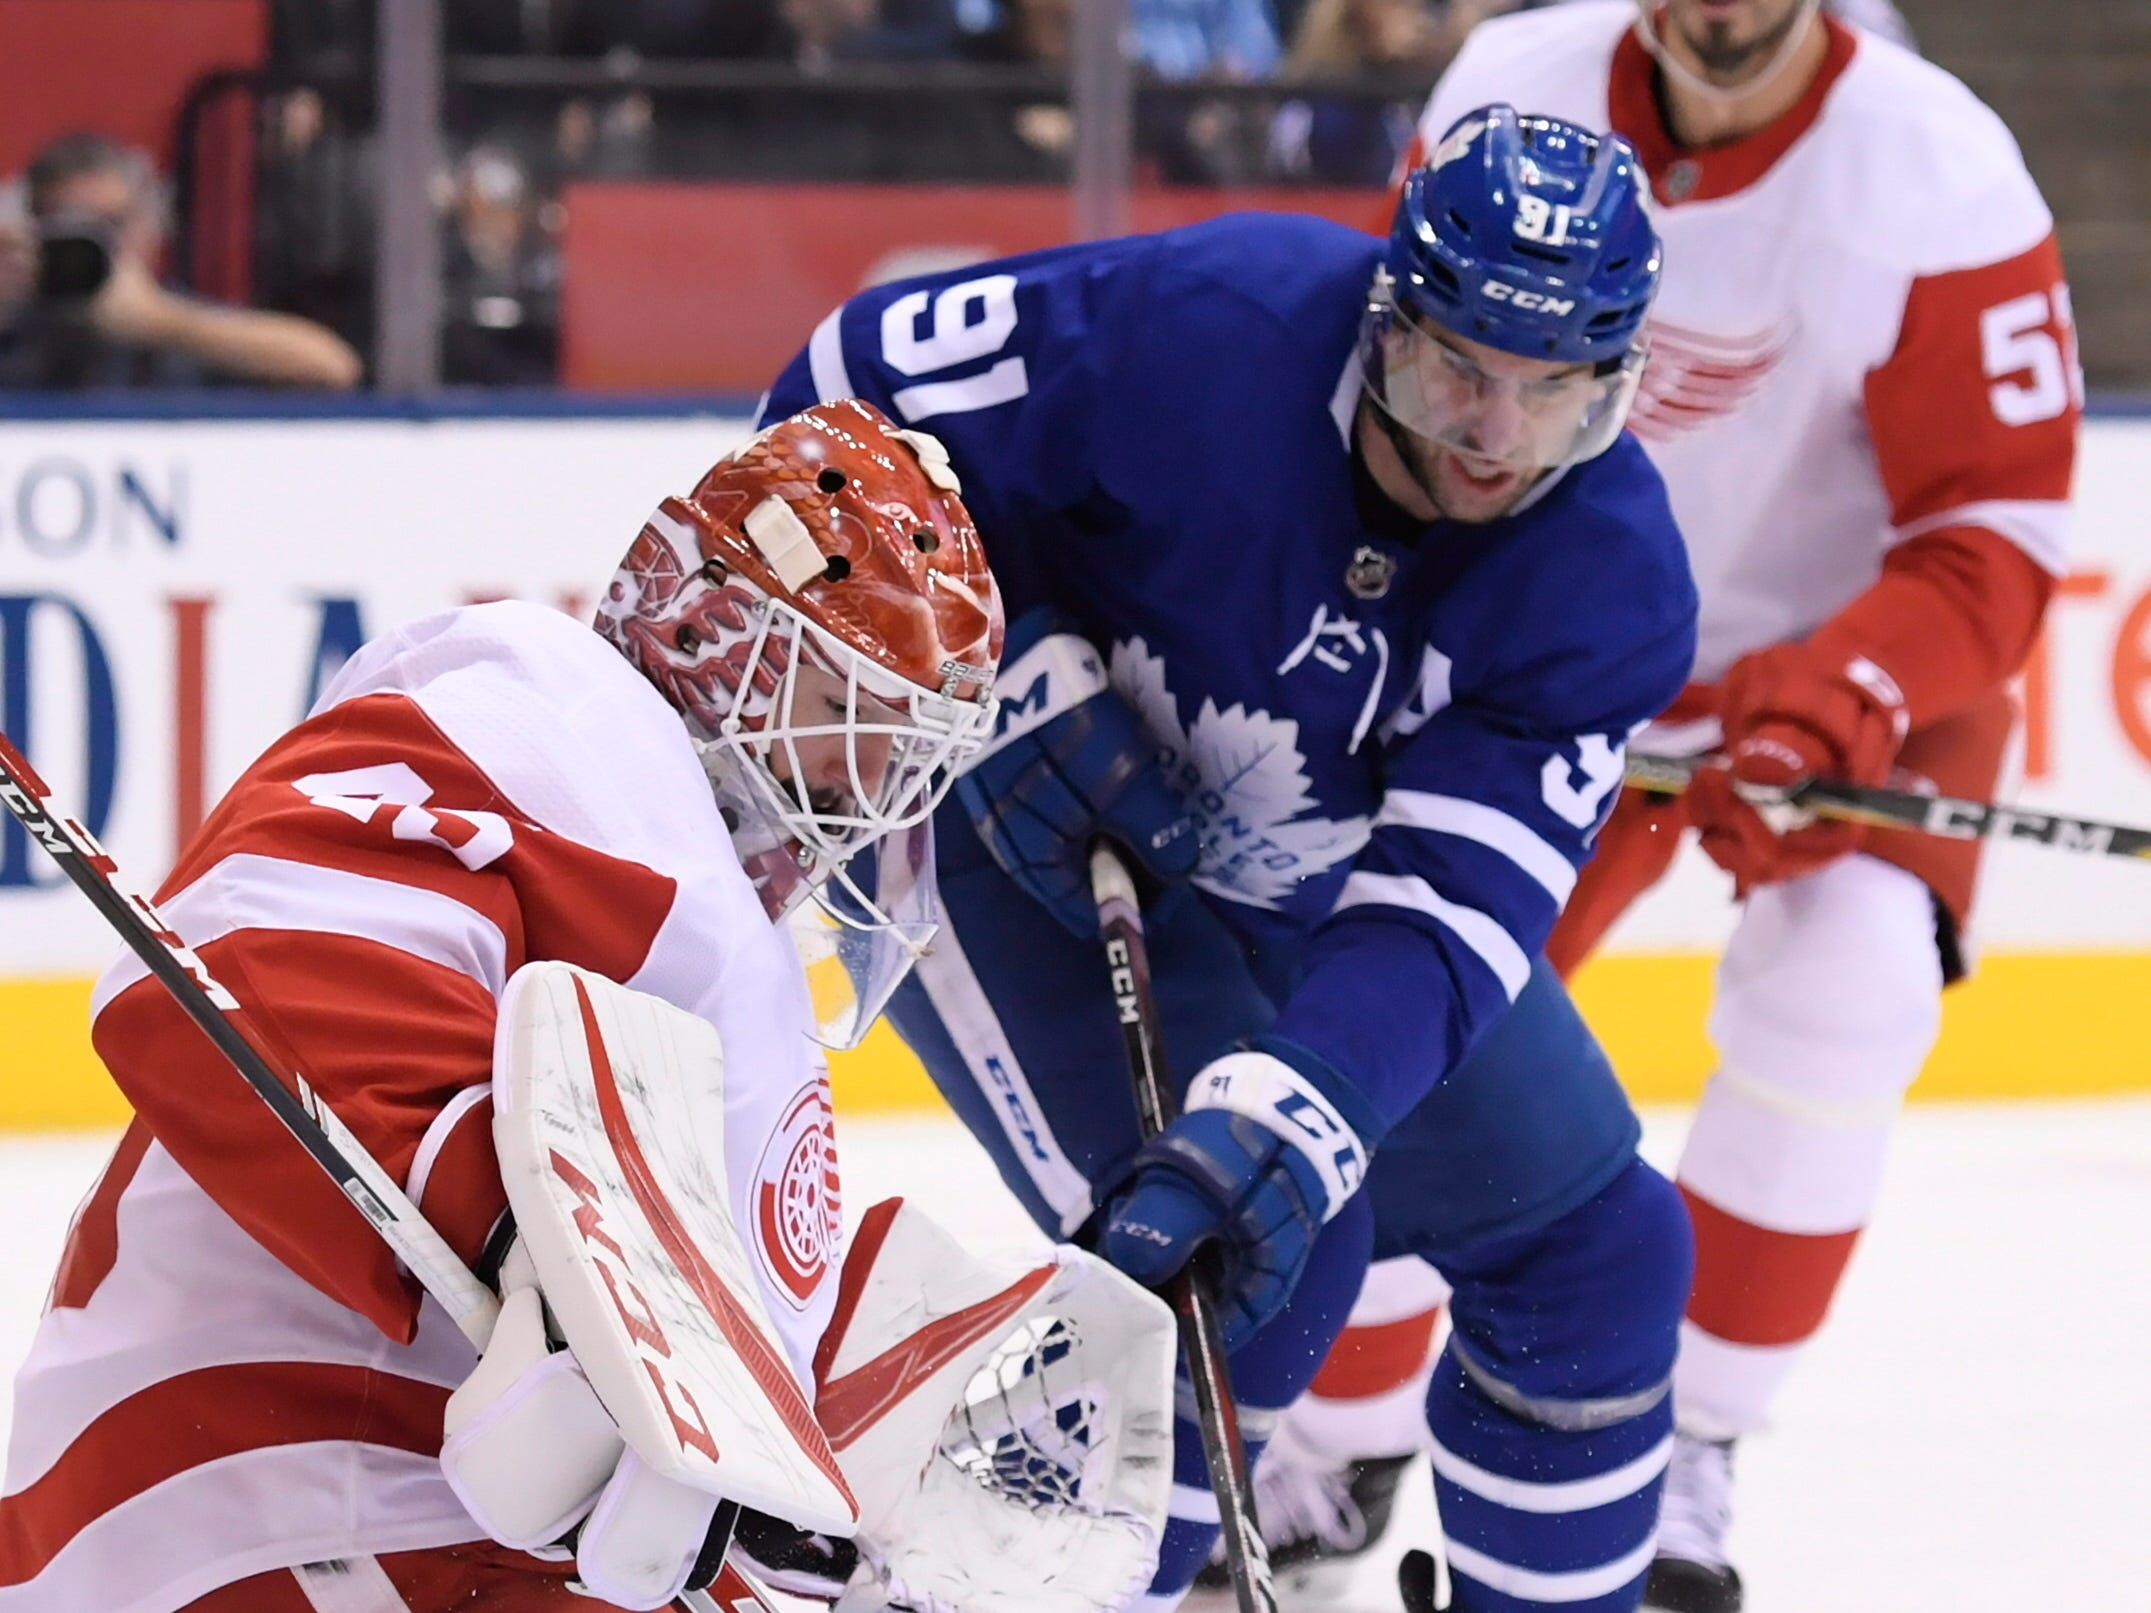 Toronto Maple Leafs center John Tavares is stopped by Detroit Red Wings goaltender Jonathan Bernier as Red Wings defenseman Jonathan Ericsson watches during the first period Thursday, Dec 6, 2018, in Toronto.